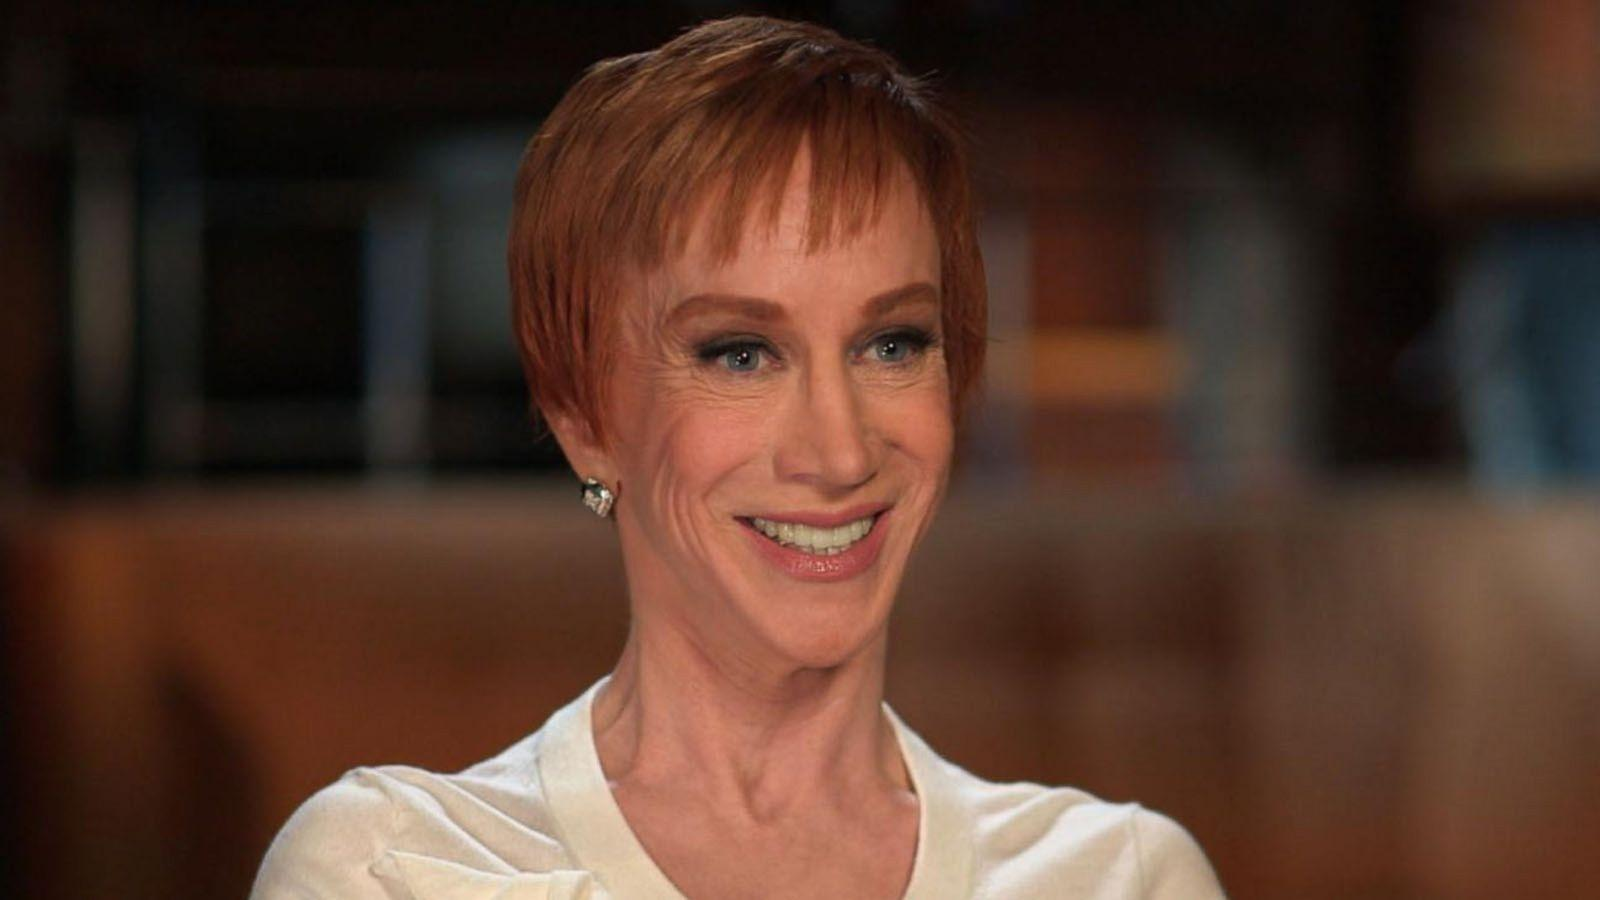 Kathy Griffin Talks About Being Blacklisted -- Here's What She Said About Anderson Cooper And Frenemy Andy Cohen